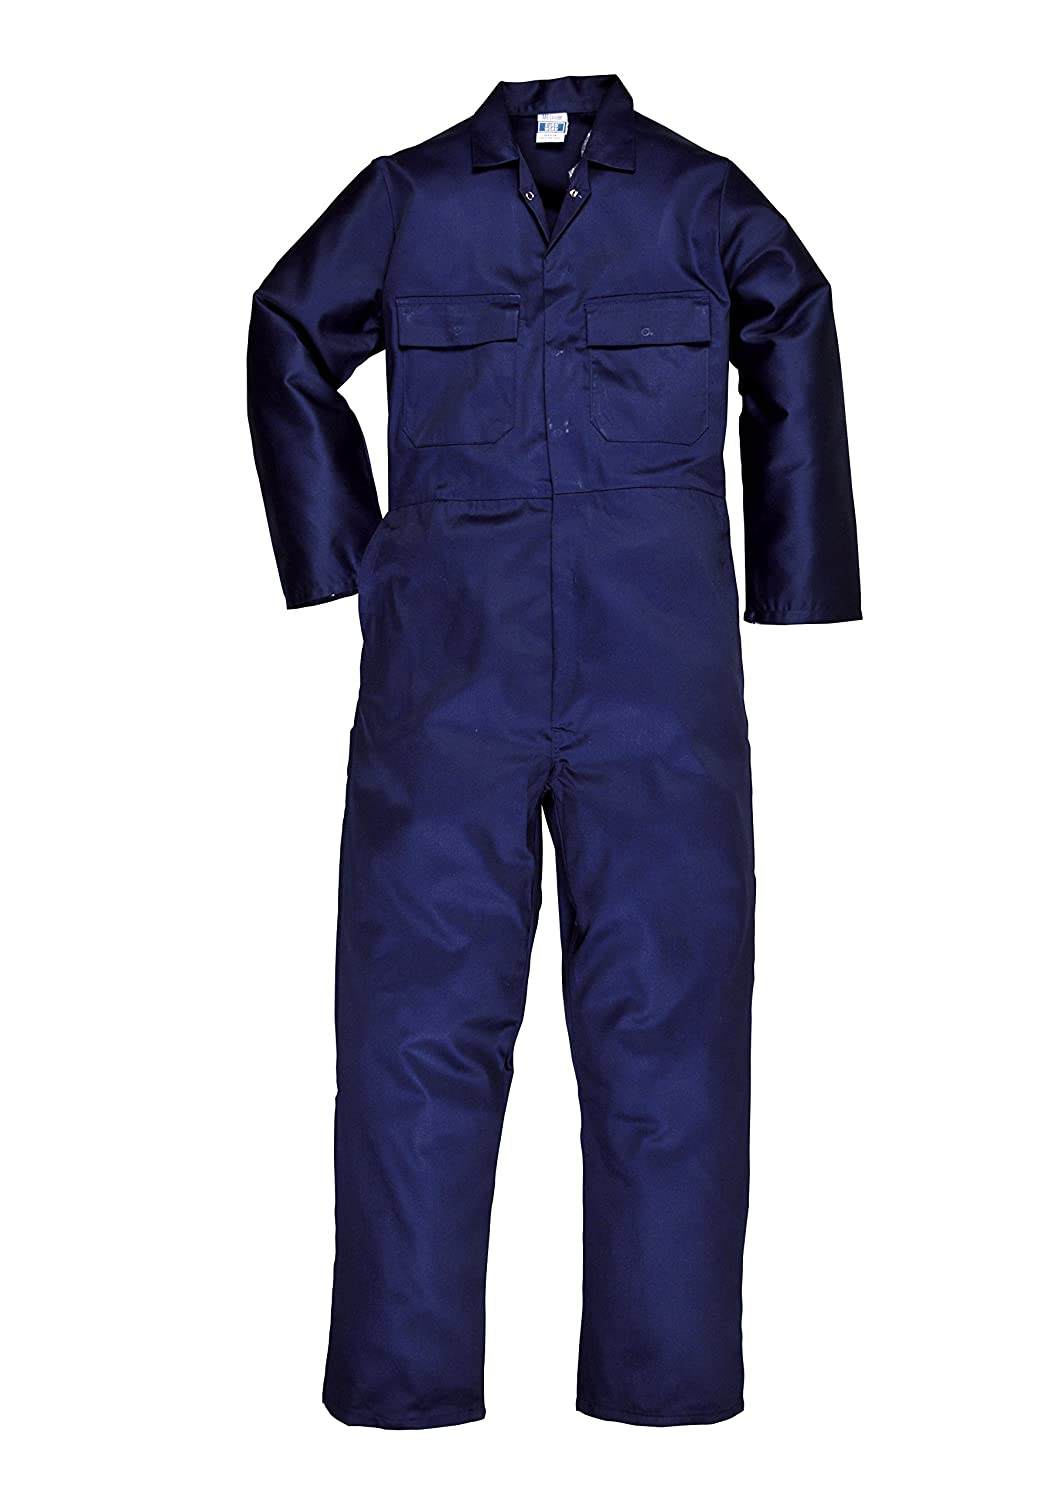 Portwest Euro Work Polycotton Coverall (S999) - Navy Blue - XL - Regular (31' Leg) - (46' - 48' Chest) RA-PW200-Reg-Navy-XL